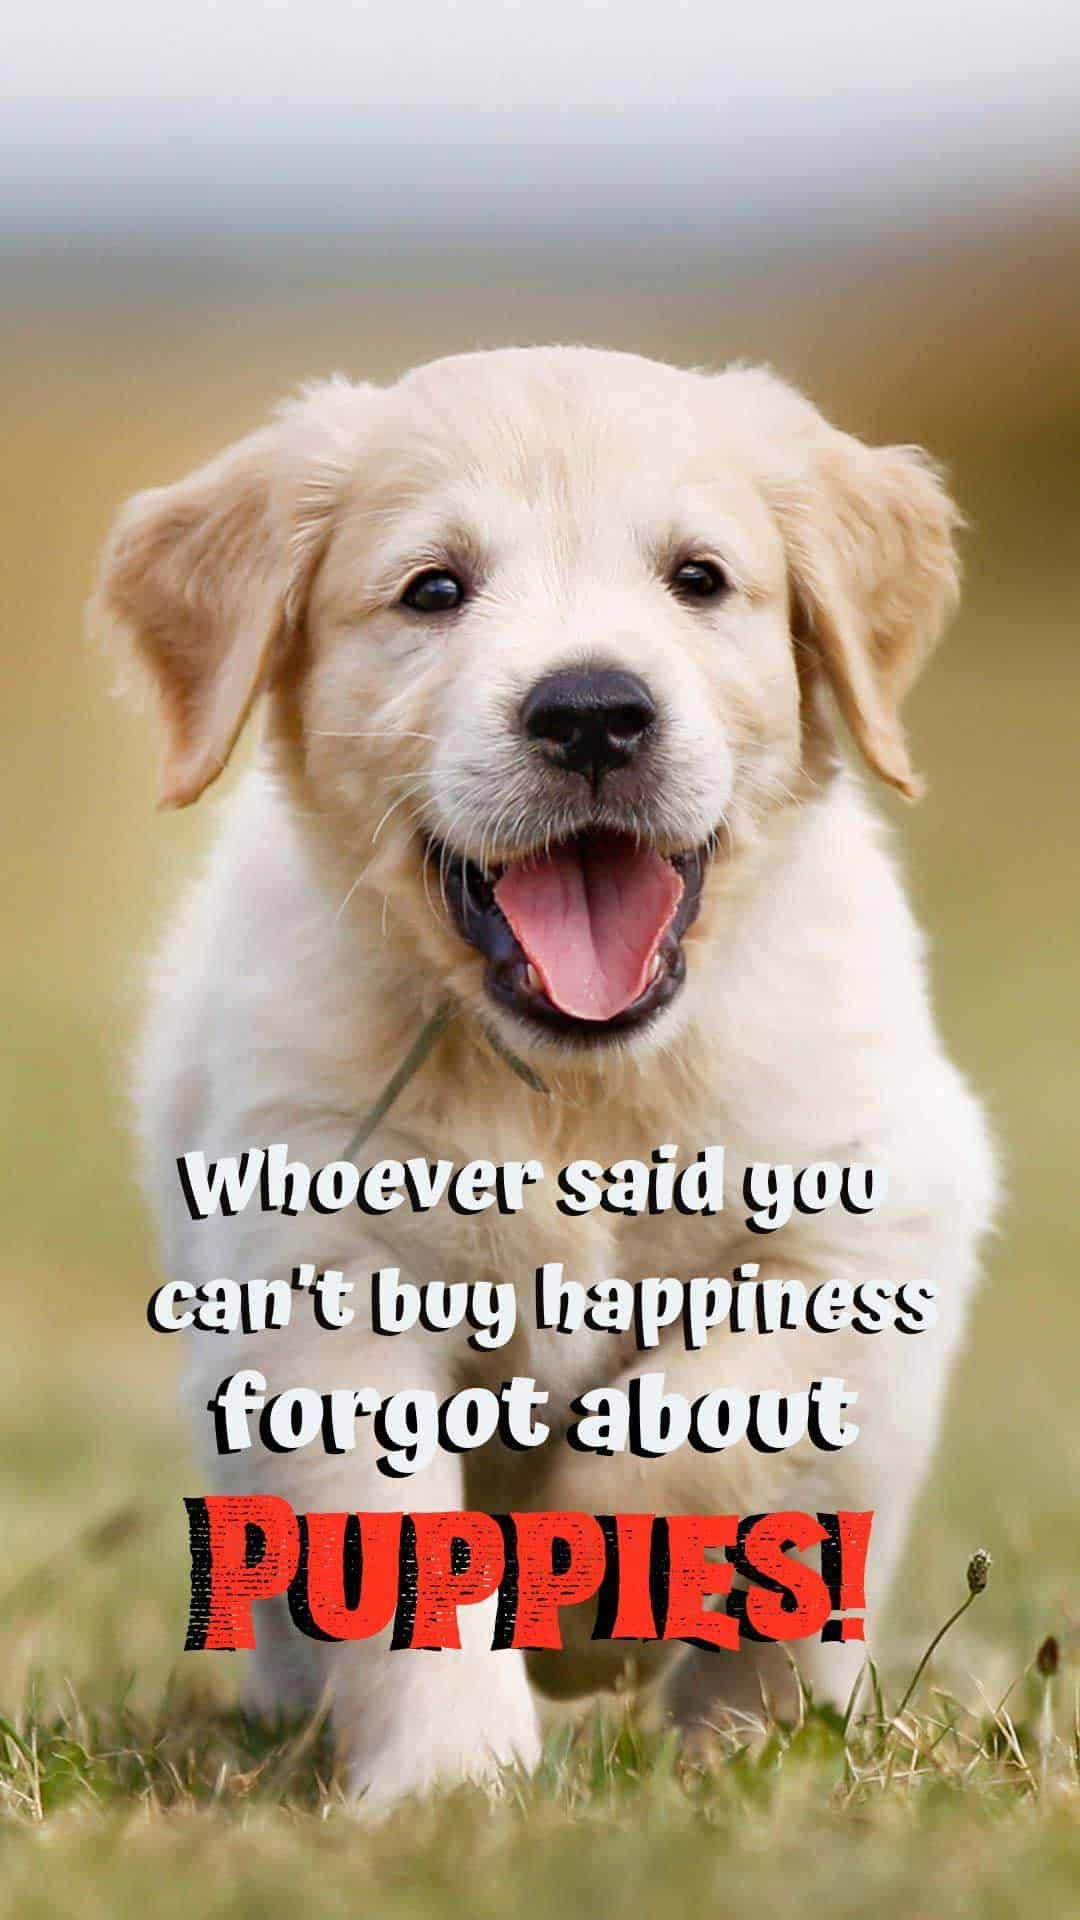 20 Free Dog Wallpapers I Phone And Android 20 Hd Sized Homescreen Wallpaper Dog Pictures Puppy Quotes Puppy Quotes Funny Cute Dog Quotes